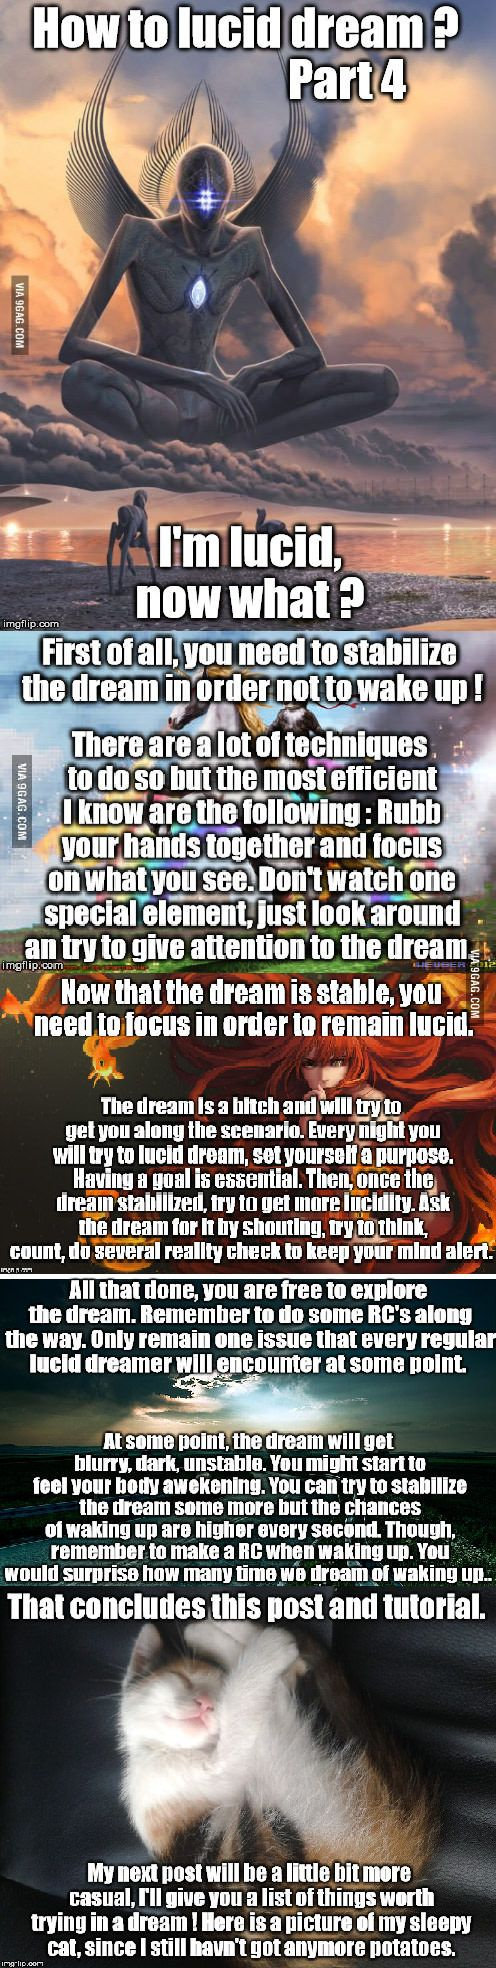 I Want To Lucid Dream Now